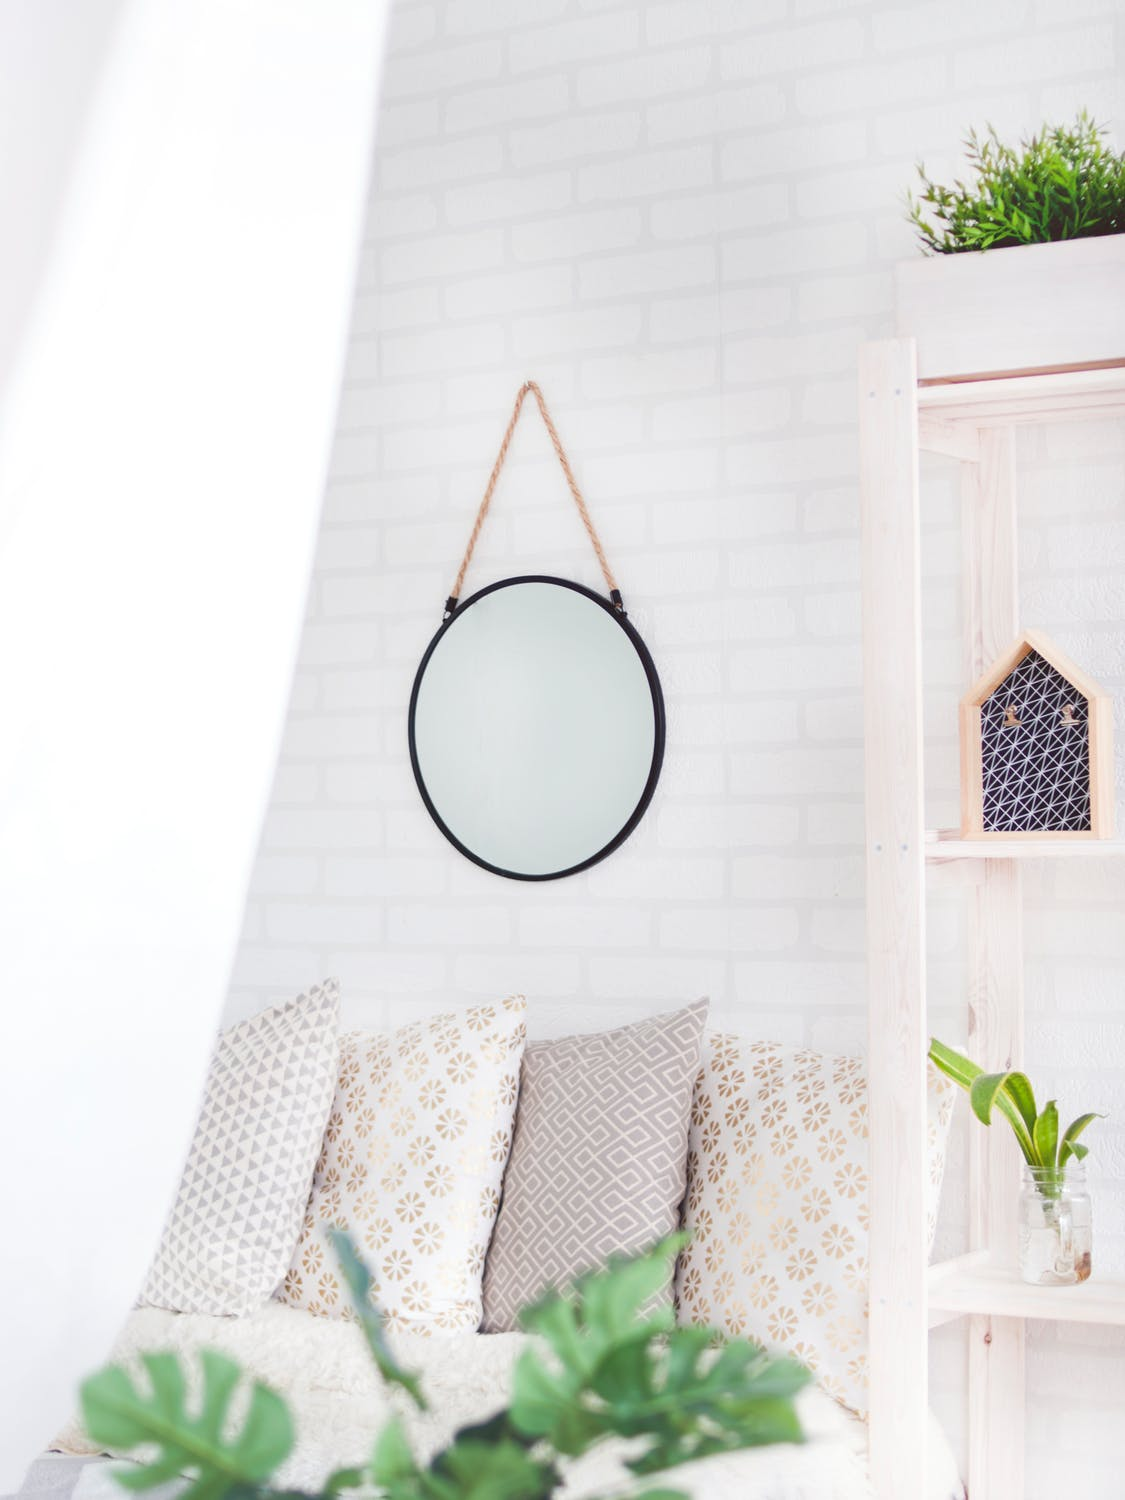 Photo: https://www.pexels.com/photo/round-black-framed-mirror-on-the-wall-905198/